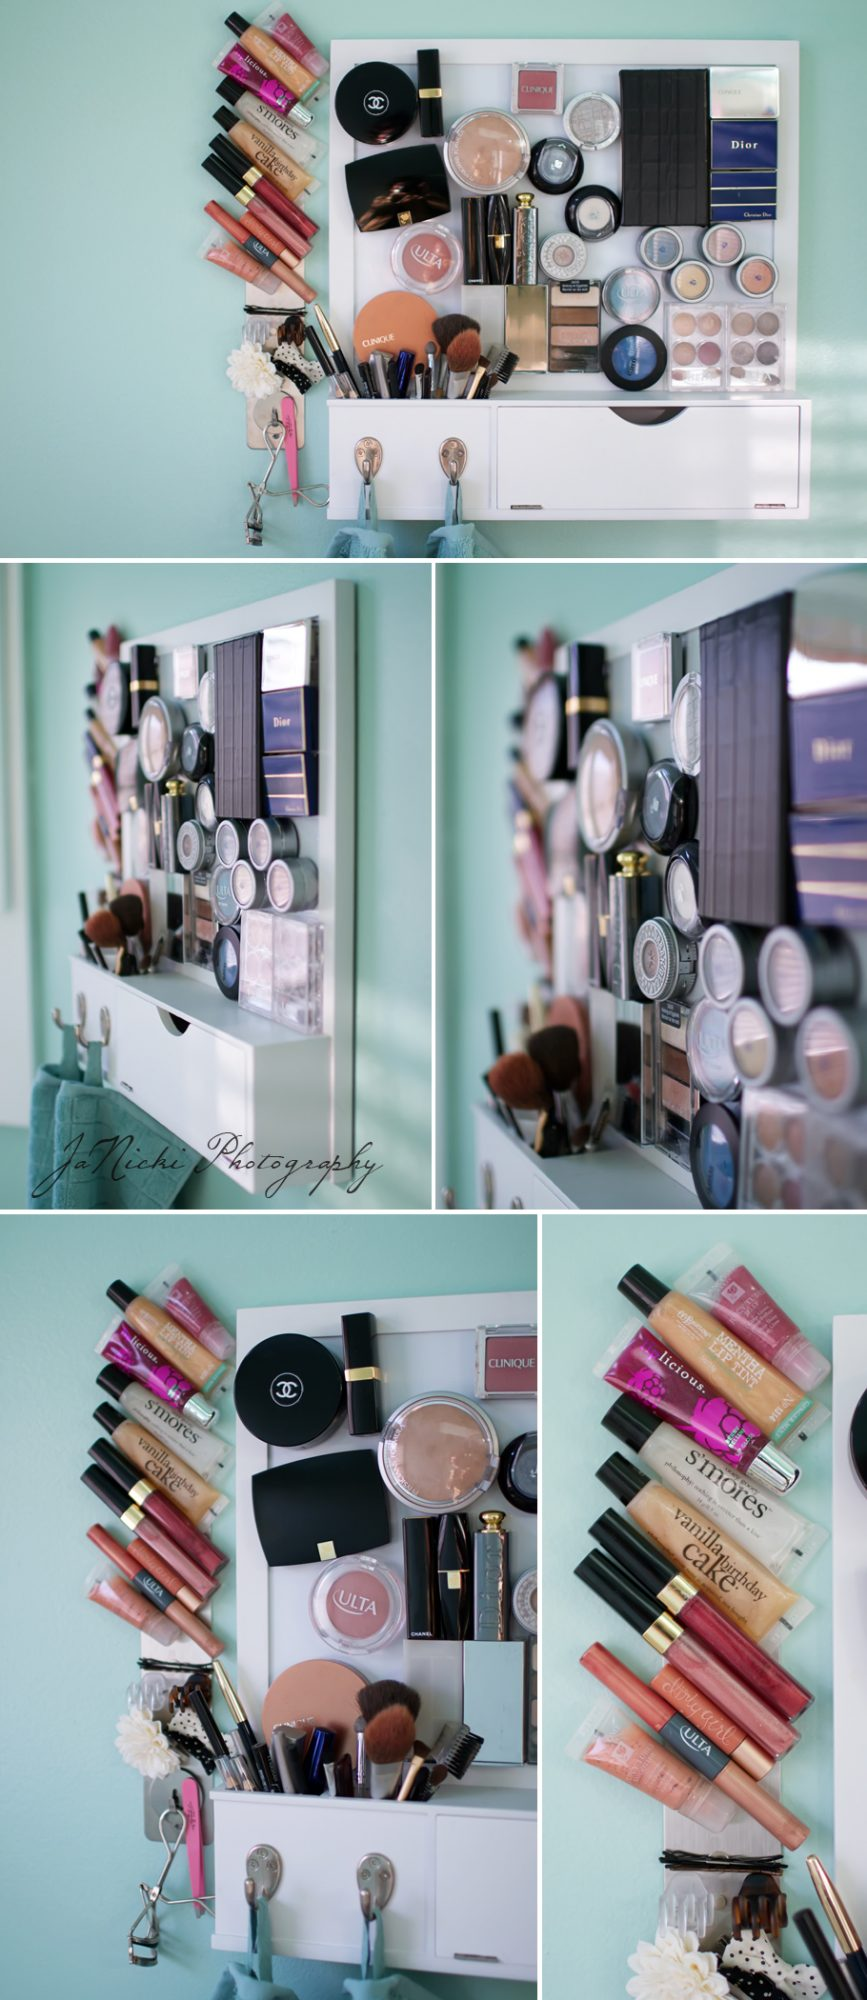 Magnetic board makeup organization hack